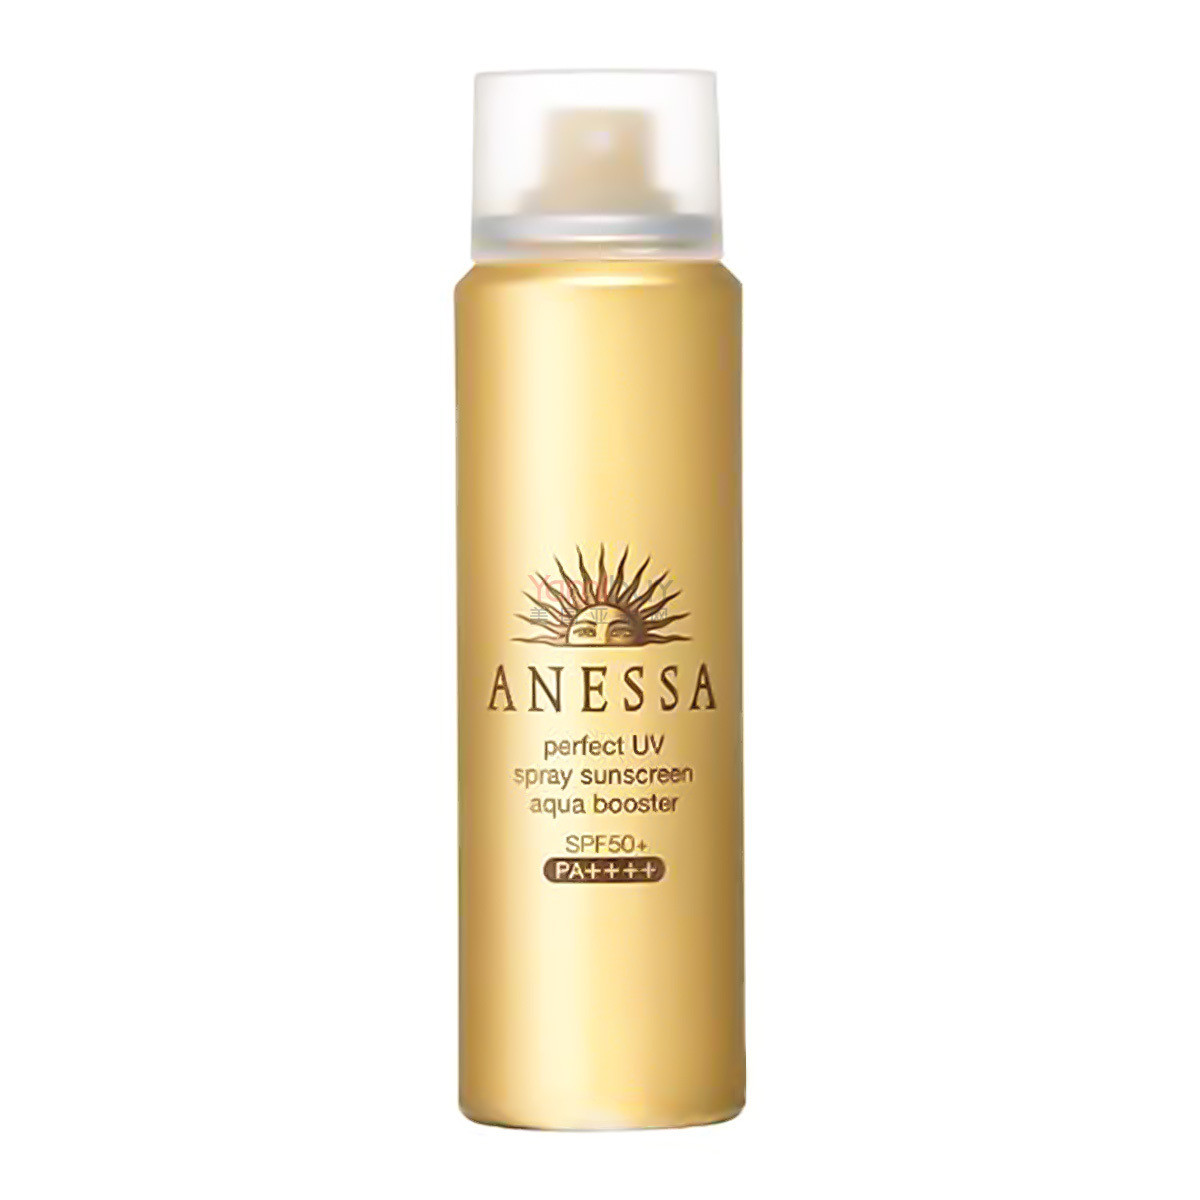 Shiseido Anessa Sunscreen Spray ( CS0004 )